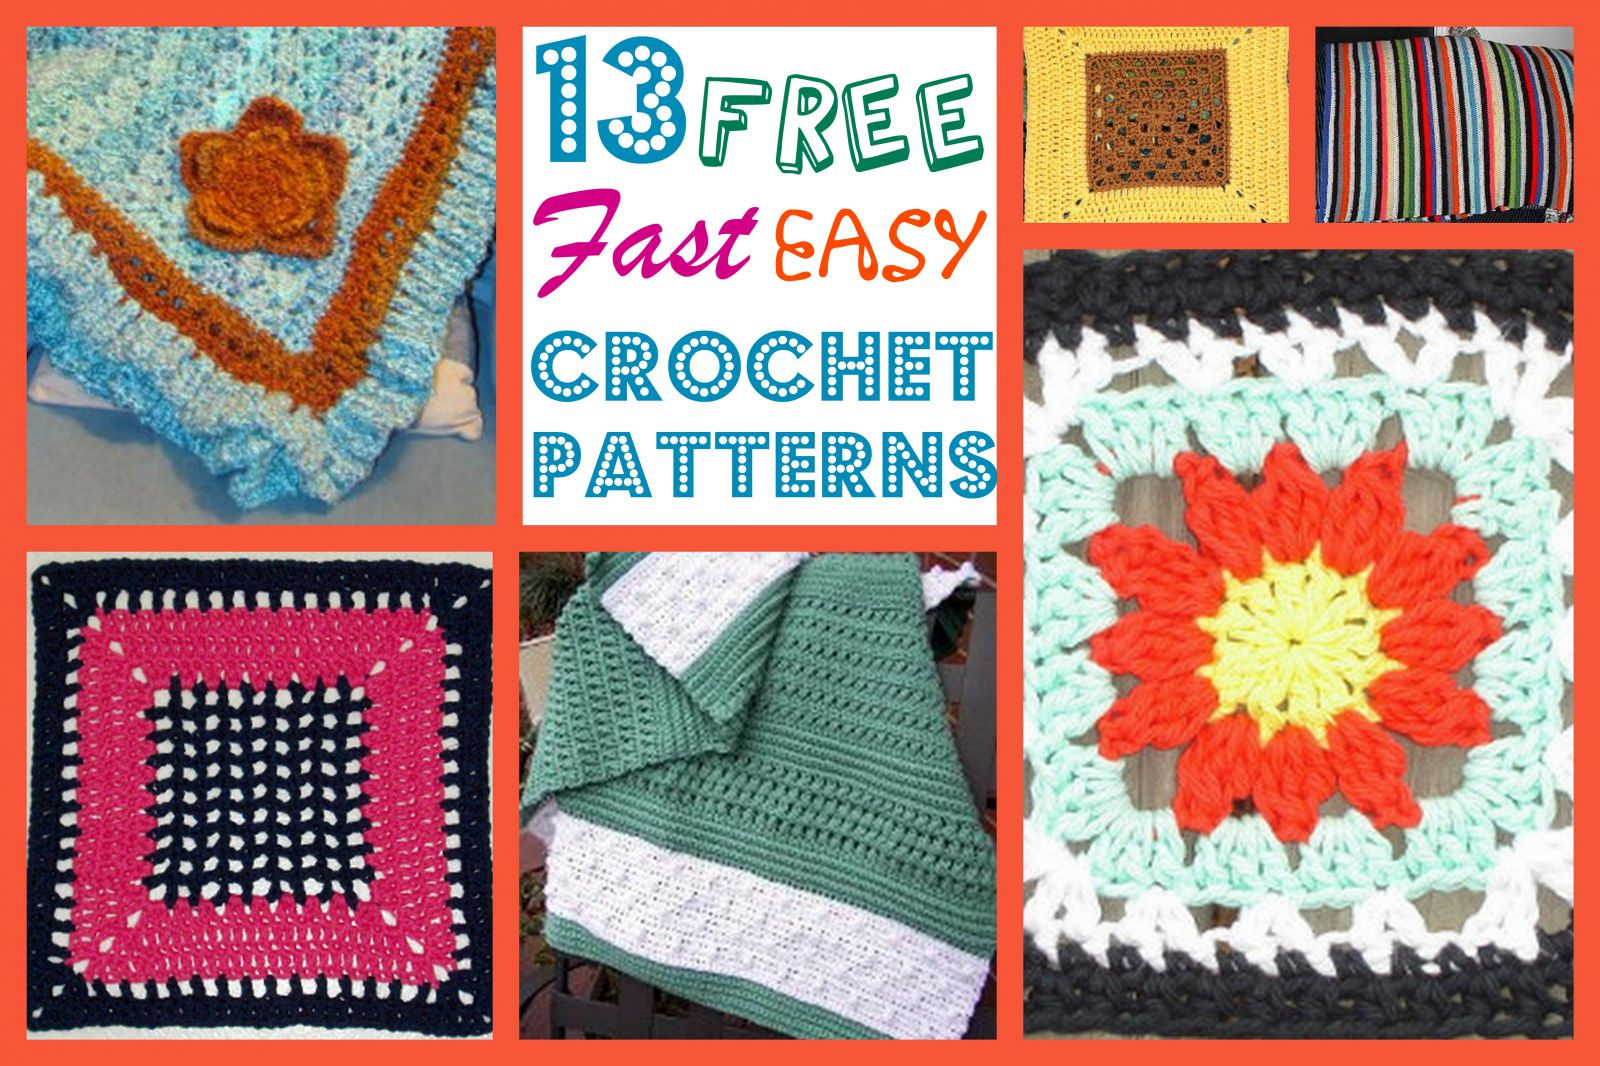 32 fast crochet afghan patterns allfreecrochetafghanpatterns 13 free fast easy crochet patterns bankloansurffo Images